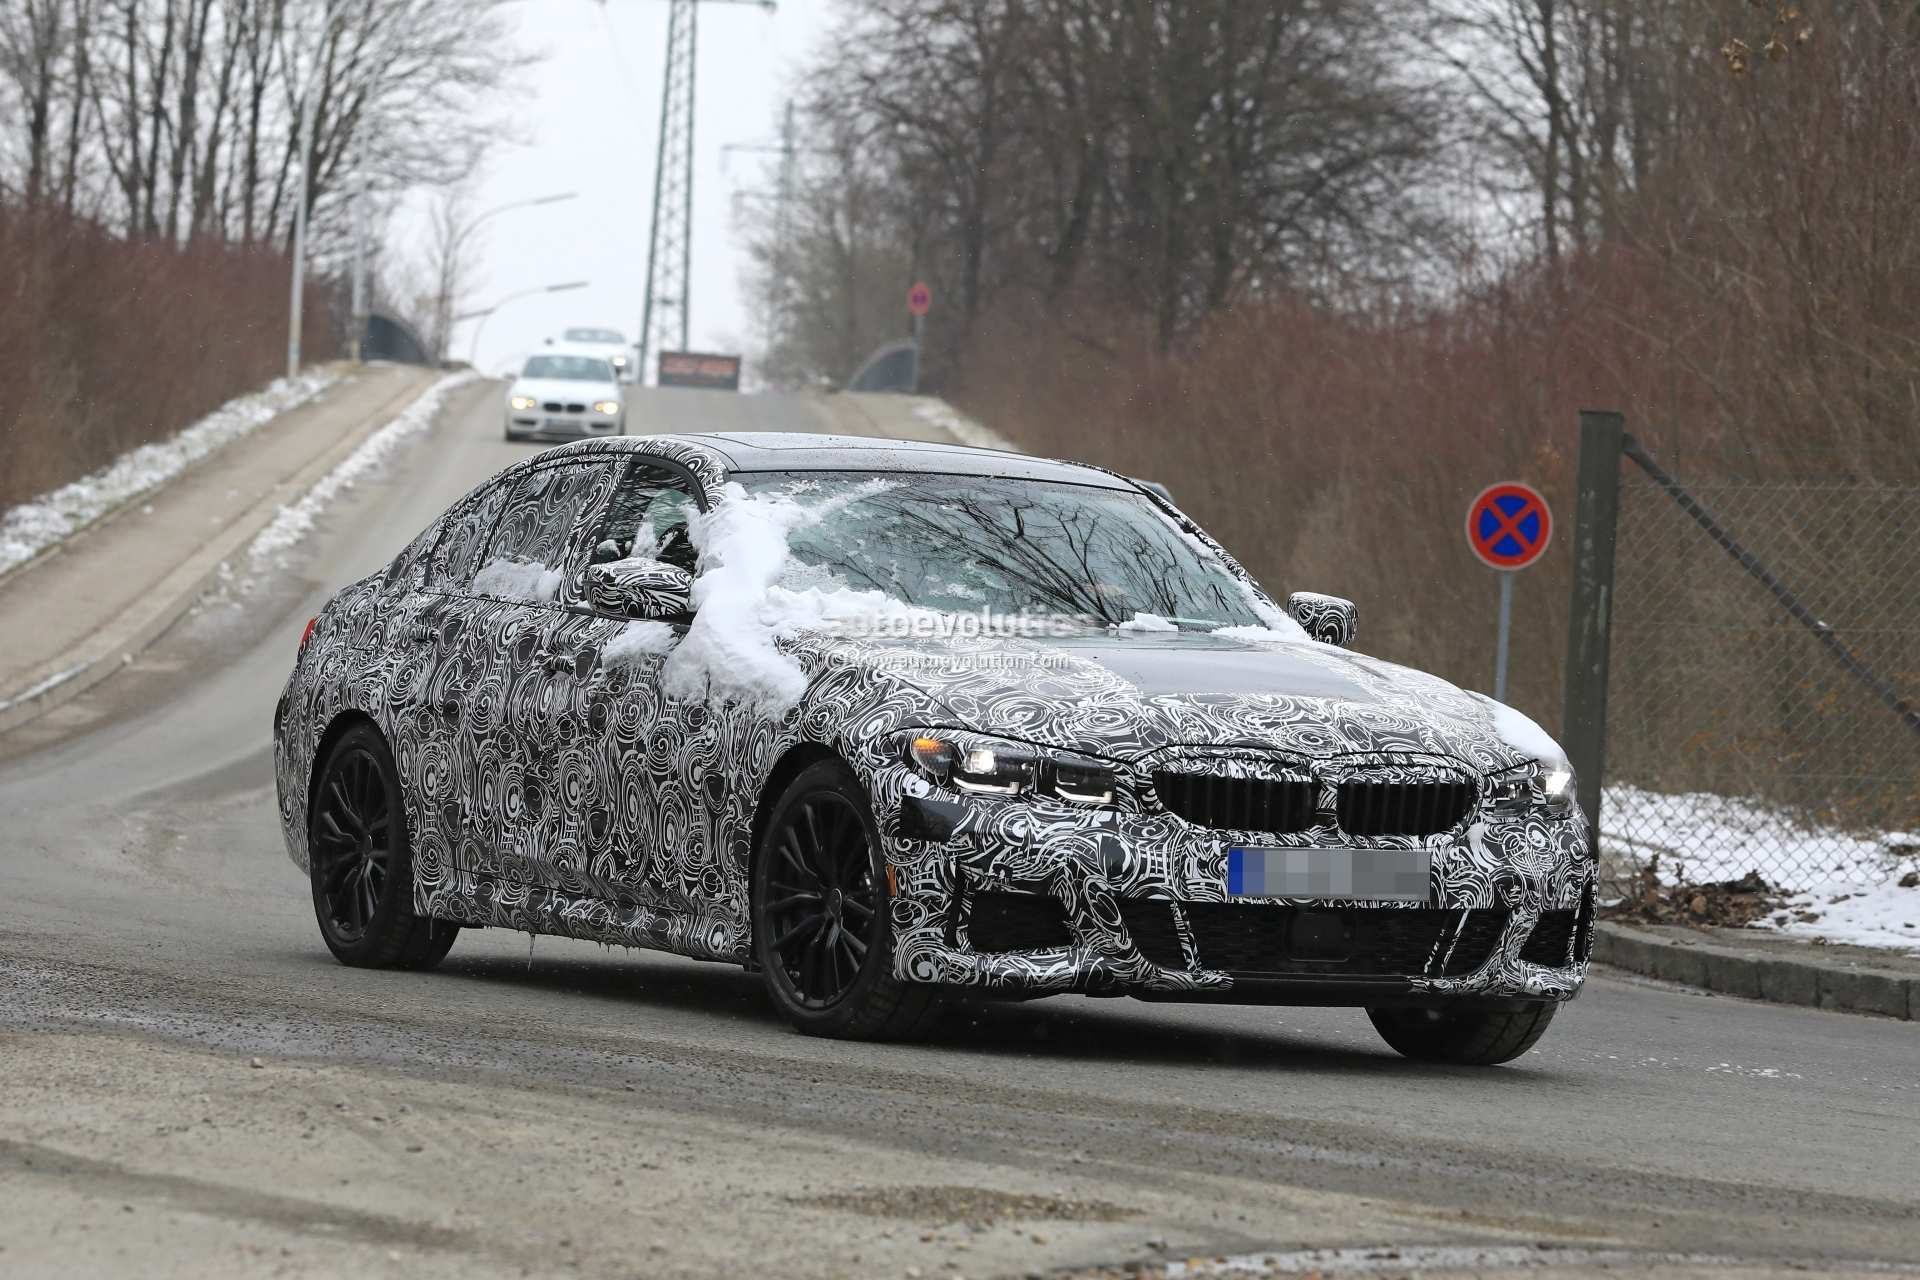 87 New 2019 Bmw 3 Series Electric Spy Shoot Exterior and Interior by 2019 Bmw 3 Series Electric Spy Shoot